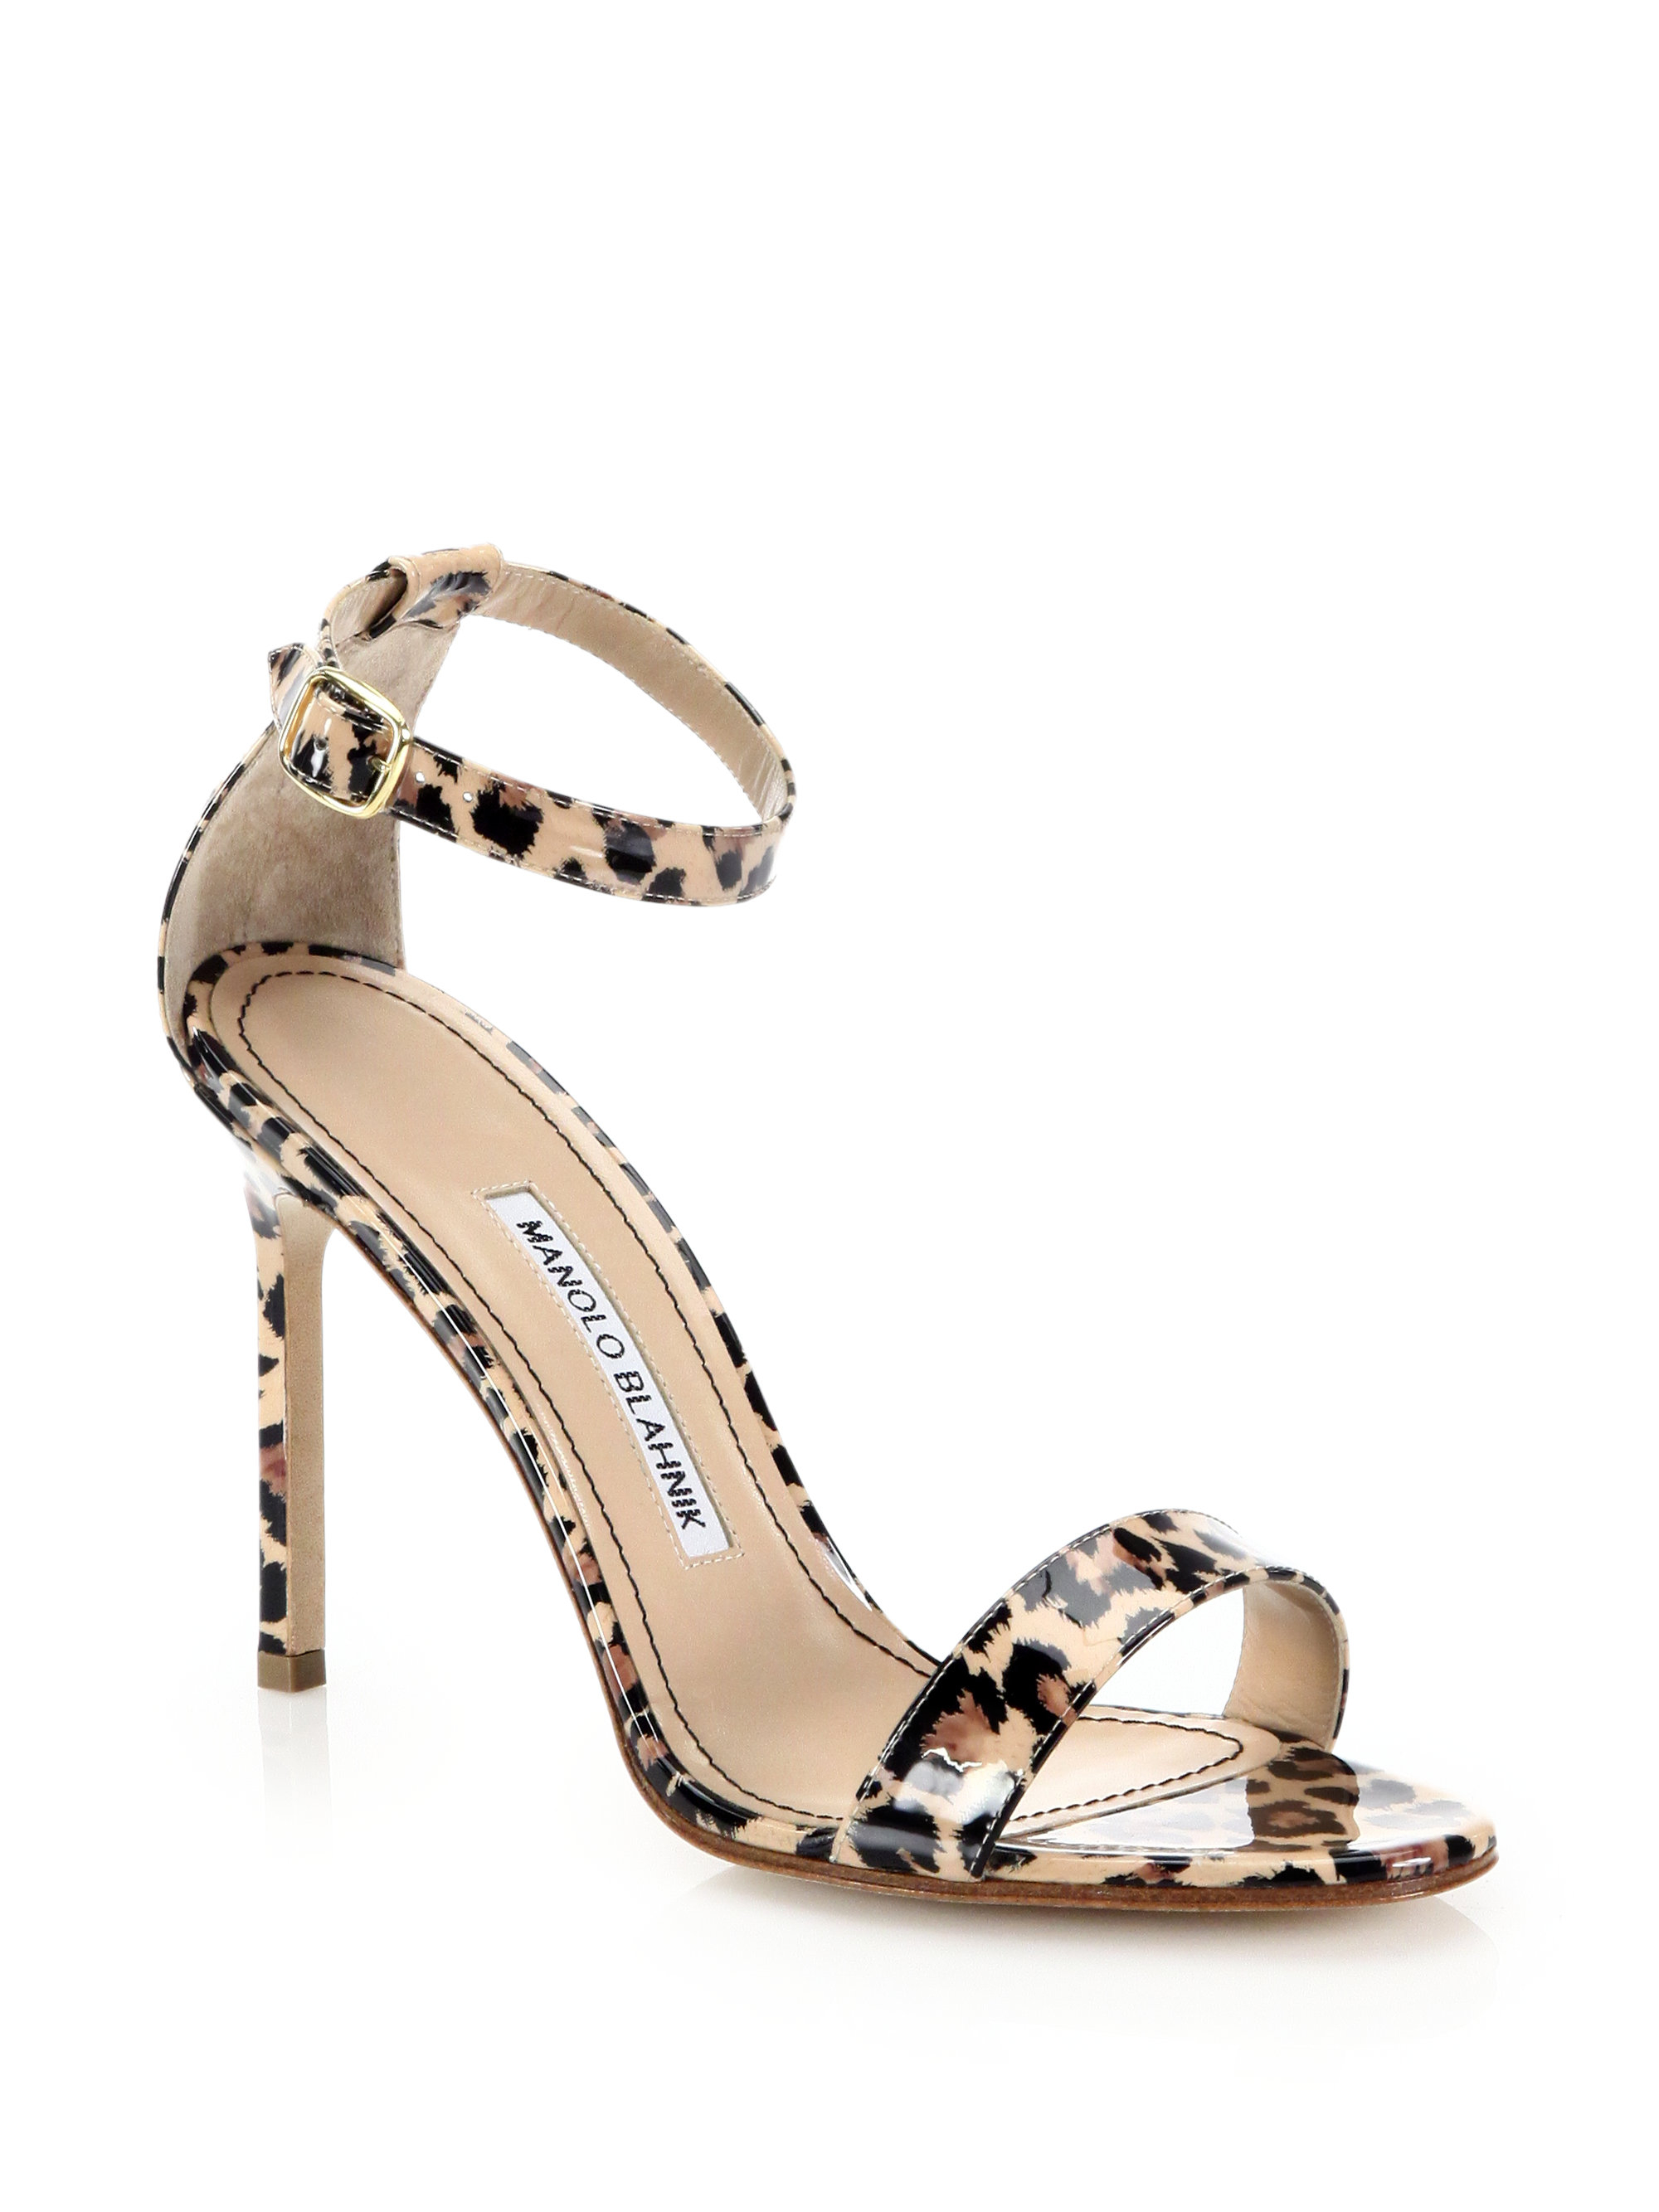 Manolo Blahnik Leopard Ankle Strap Sandals clearance online sale discount cheap how much 1C0Xz00k